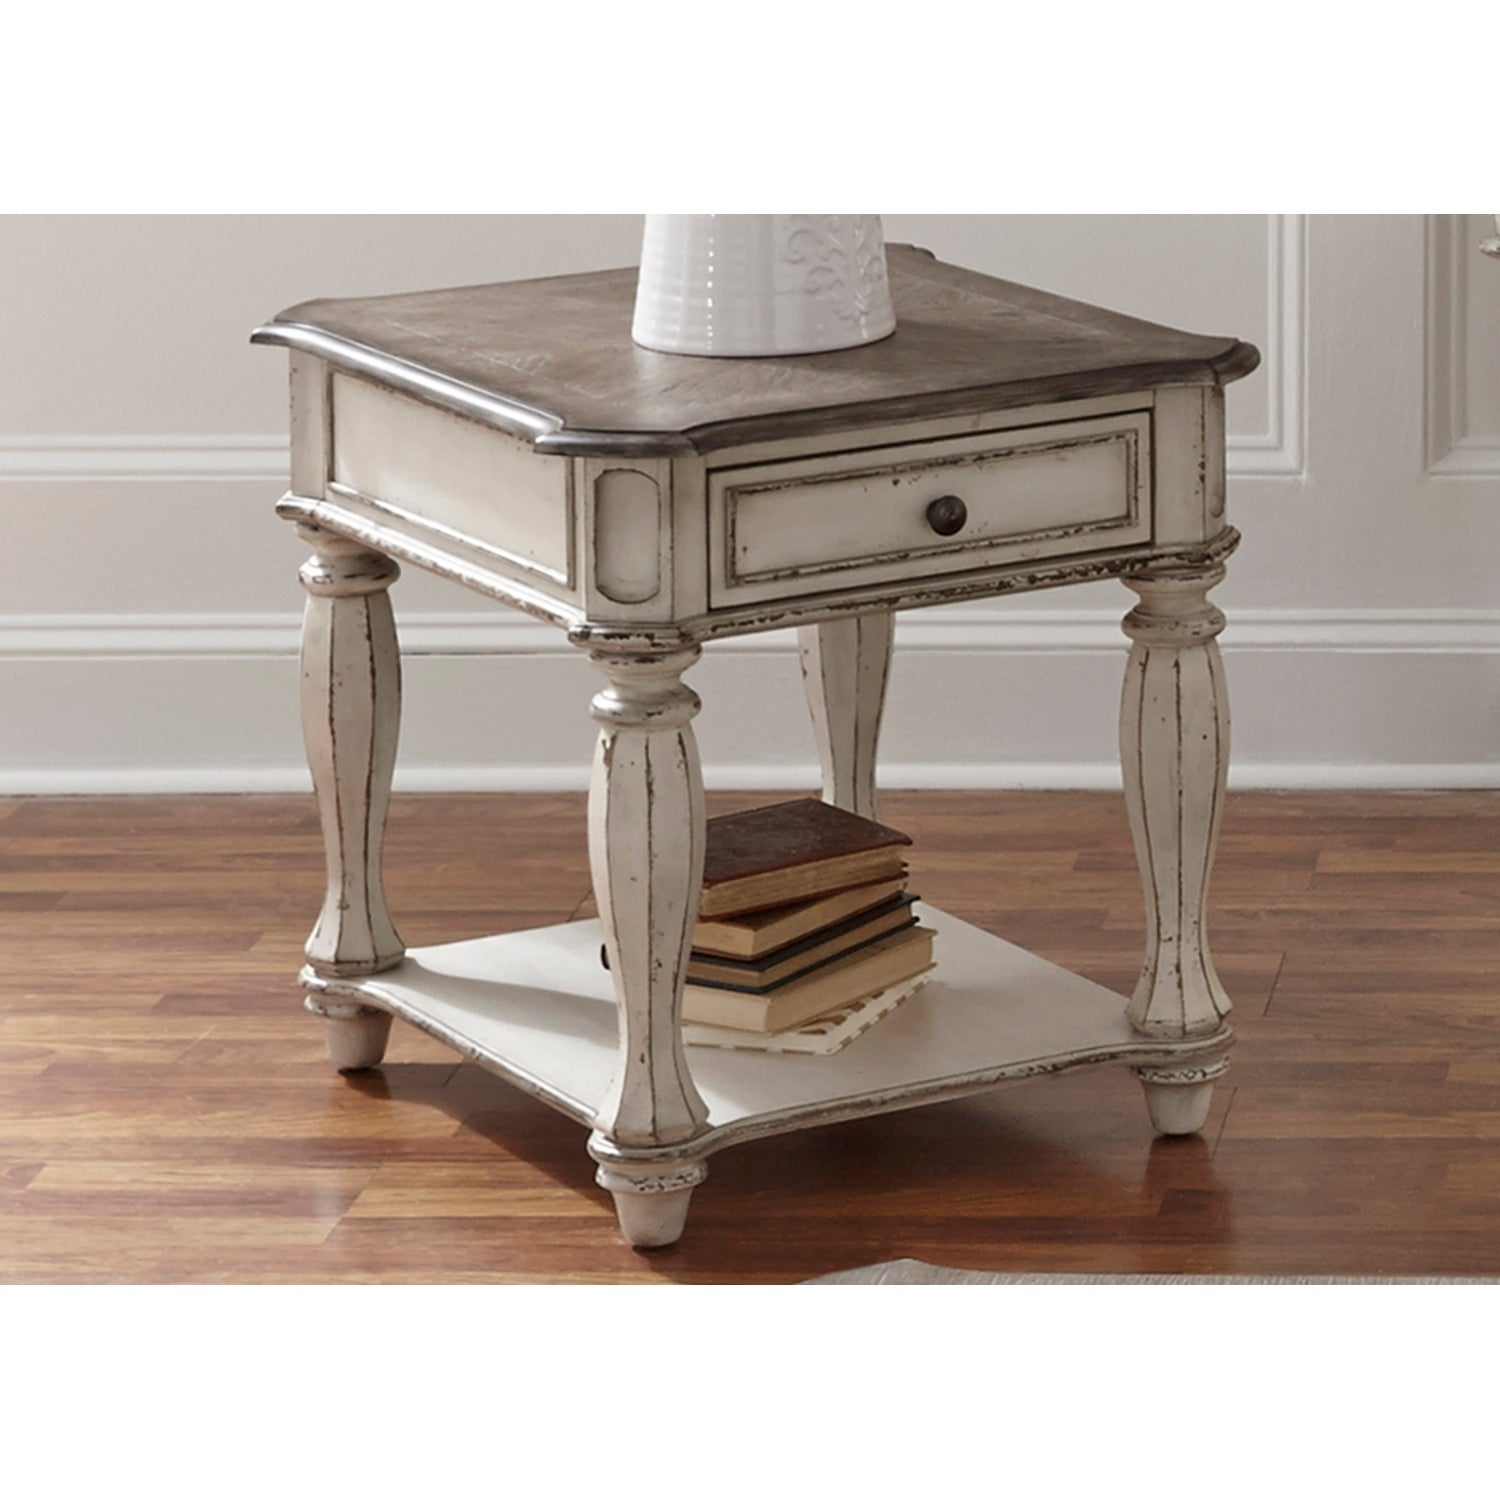 magnolia manor antique white end table free thomasville furniture alpharetta elegant round glass top dining chrome corner ashley porter panel corley sofa outdoor keter cool bar